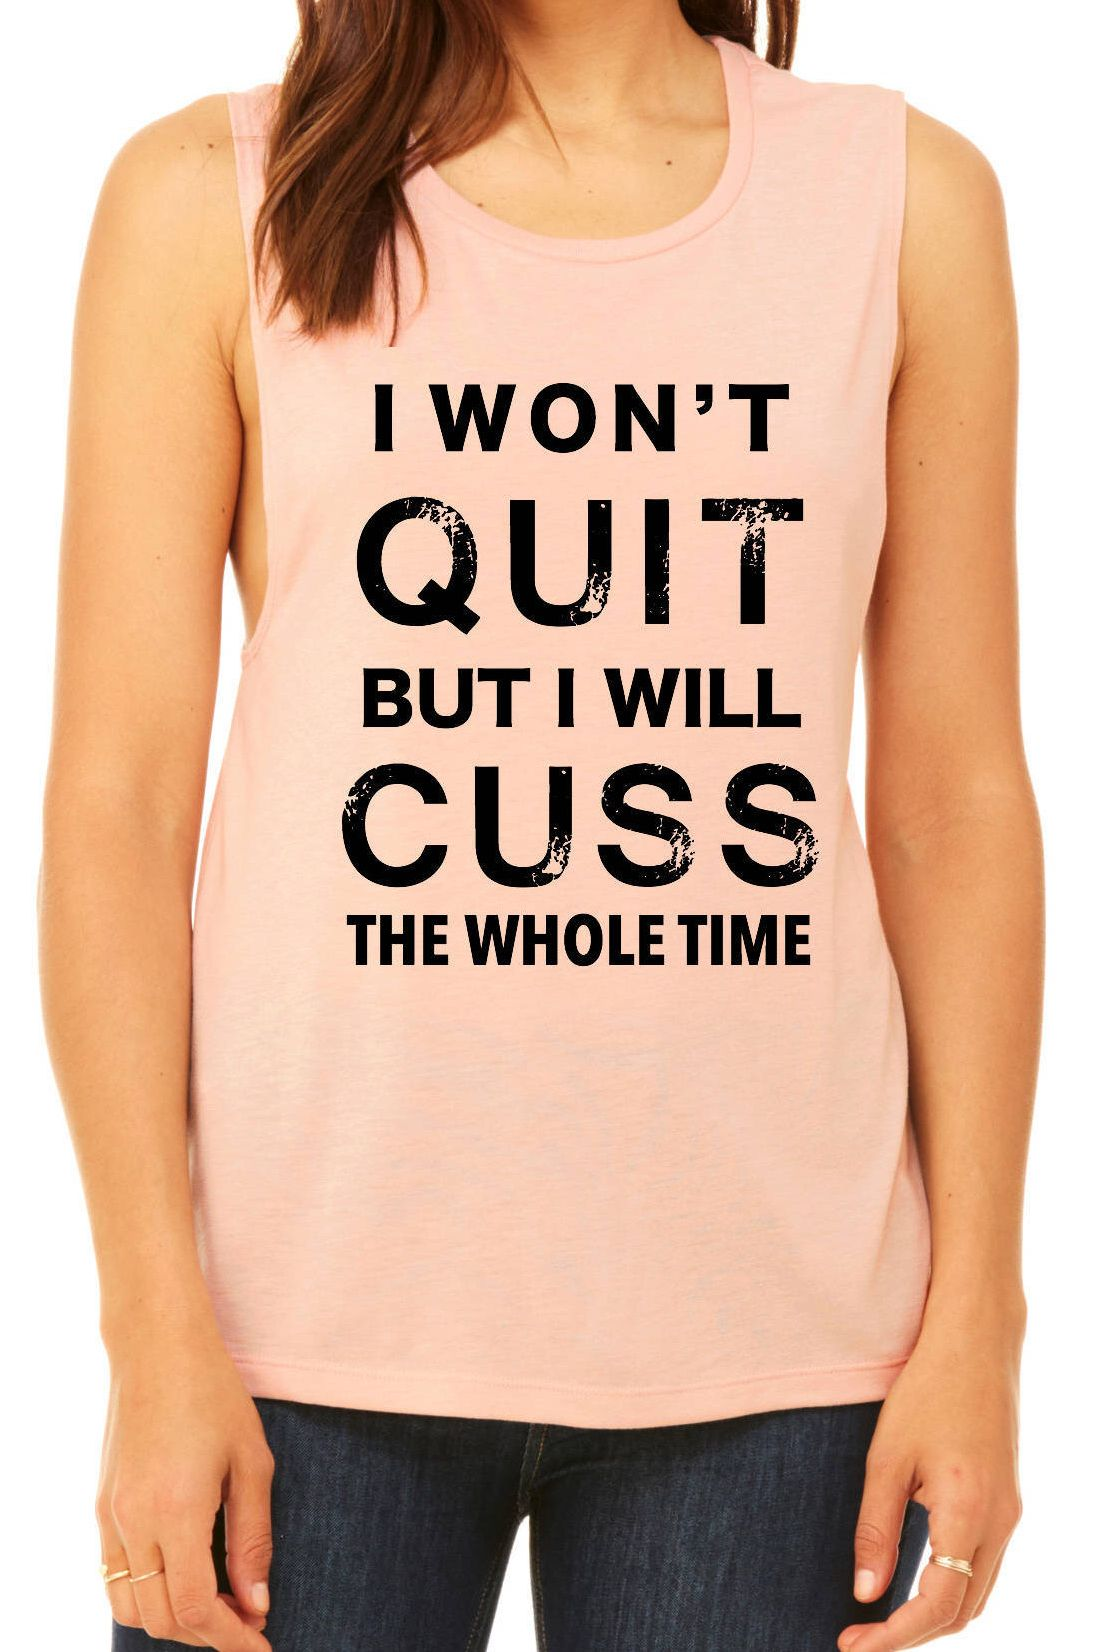 Workout Workout Motivation Workout Clothes Workout Outfits Yoga Yoga Inspiration Fitness Fitness Motivat Funny Shirt Sayings Workout Shirts Woman Quotes